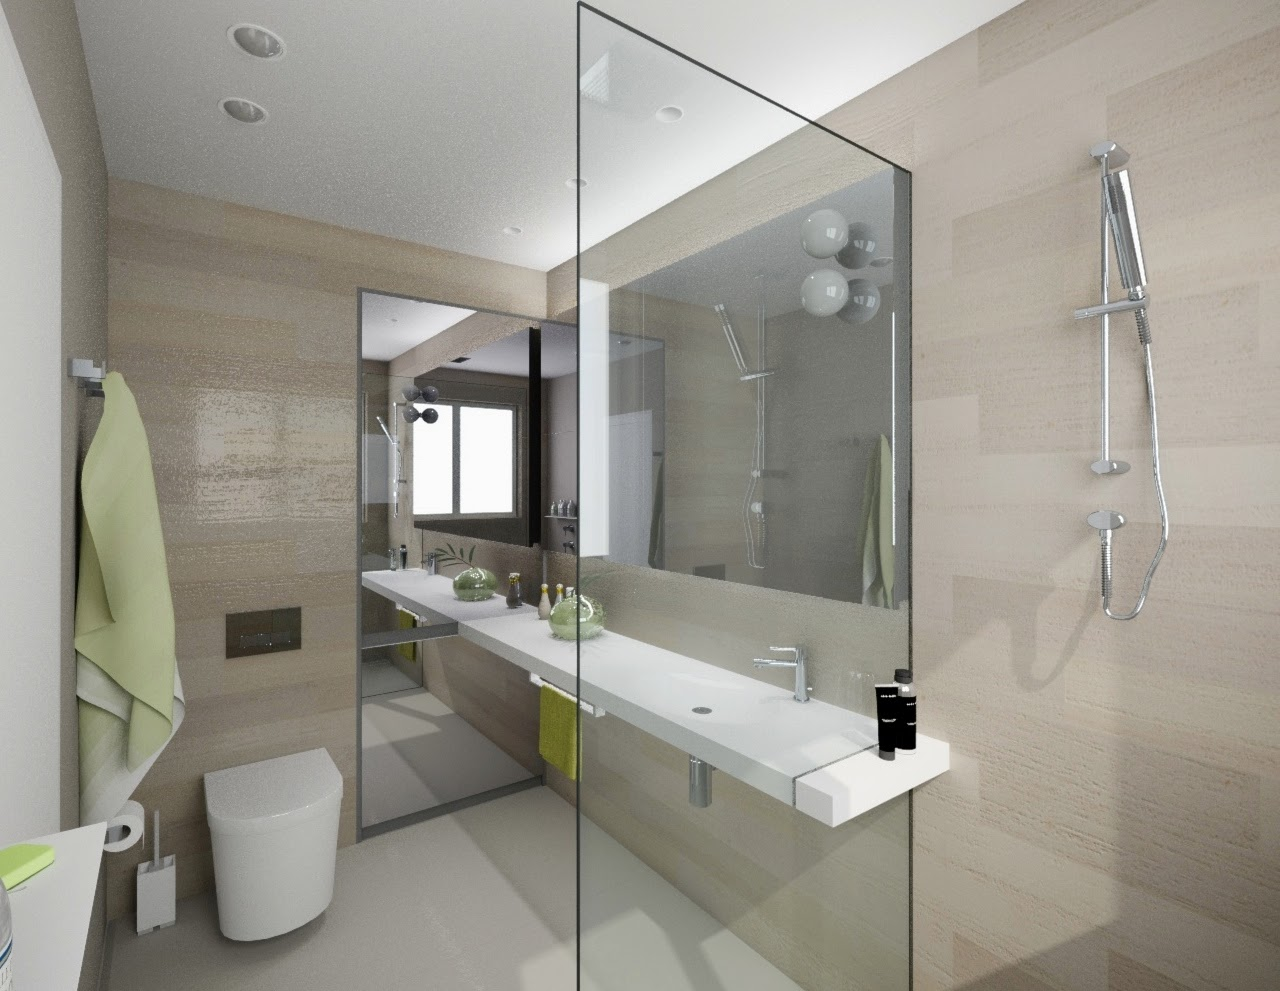 modern bathroom design. black bathroom fixtures and decor keeping